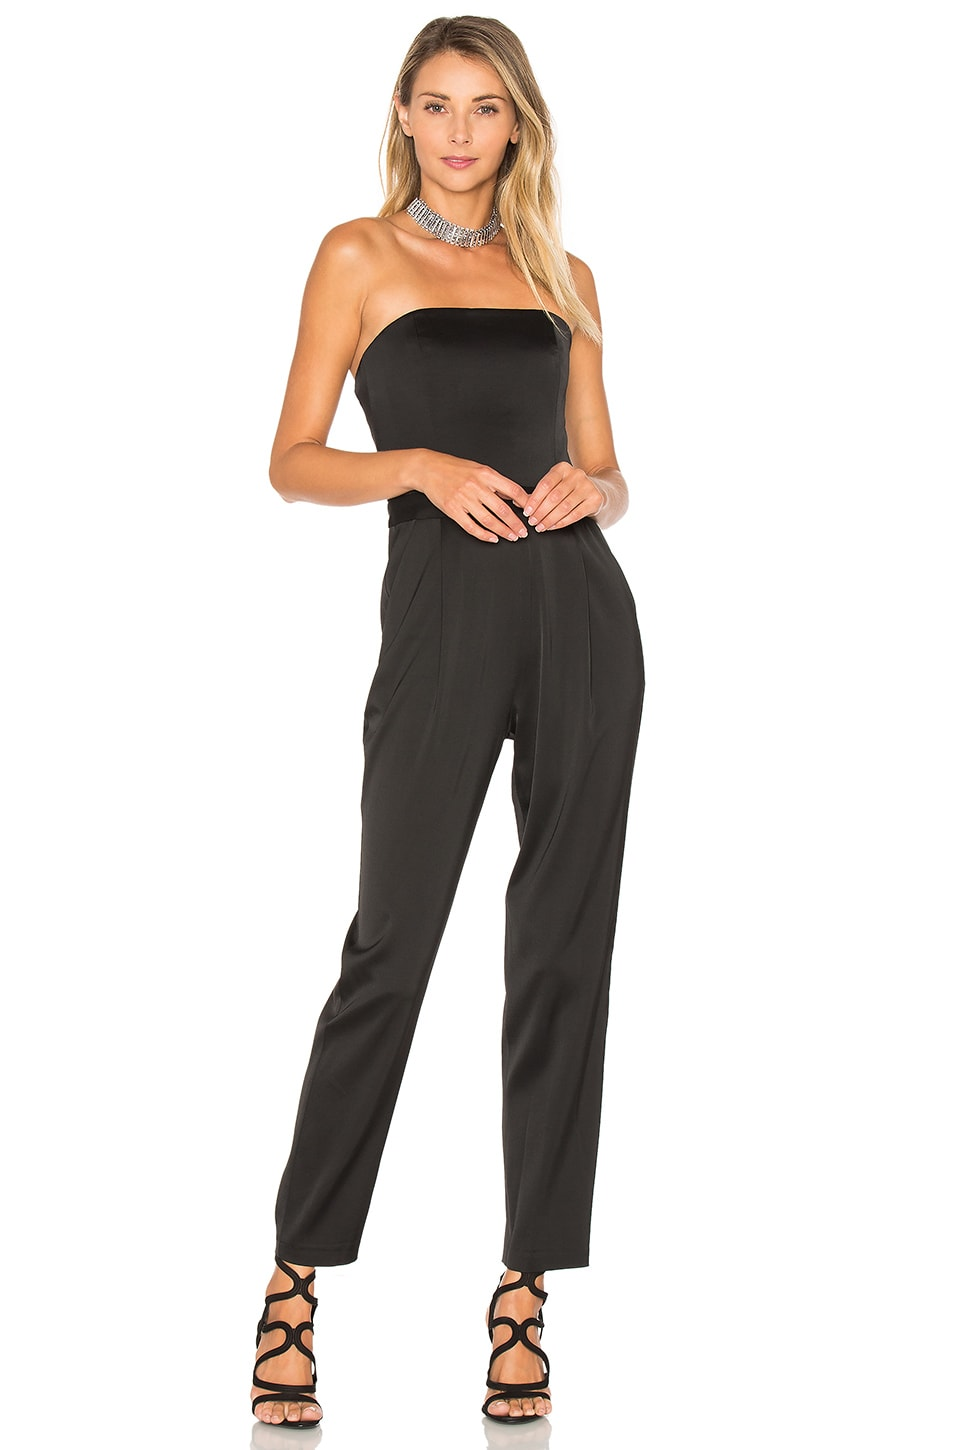 Alice + Olivia Jeri Jumpsuit in Black